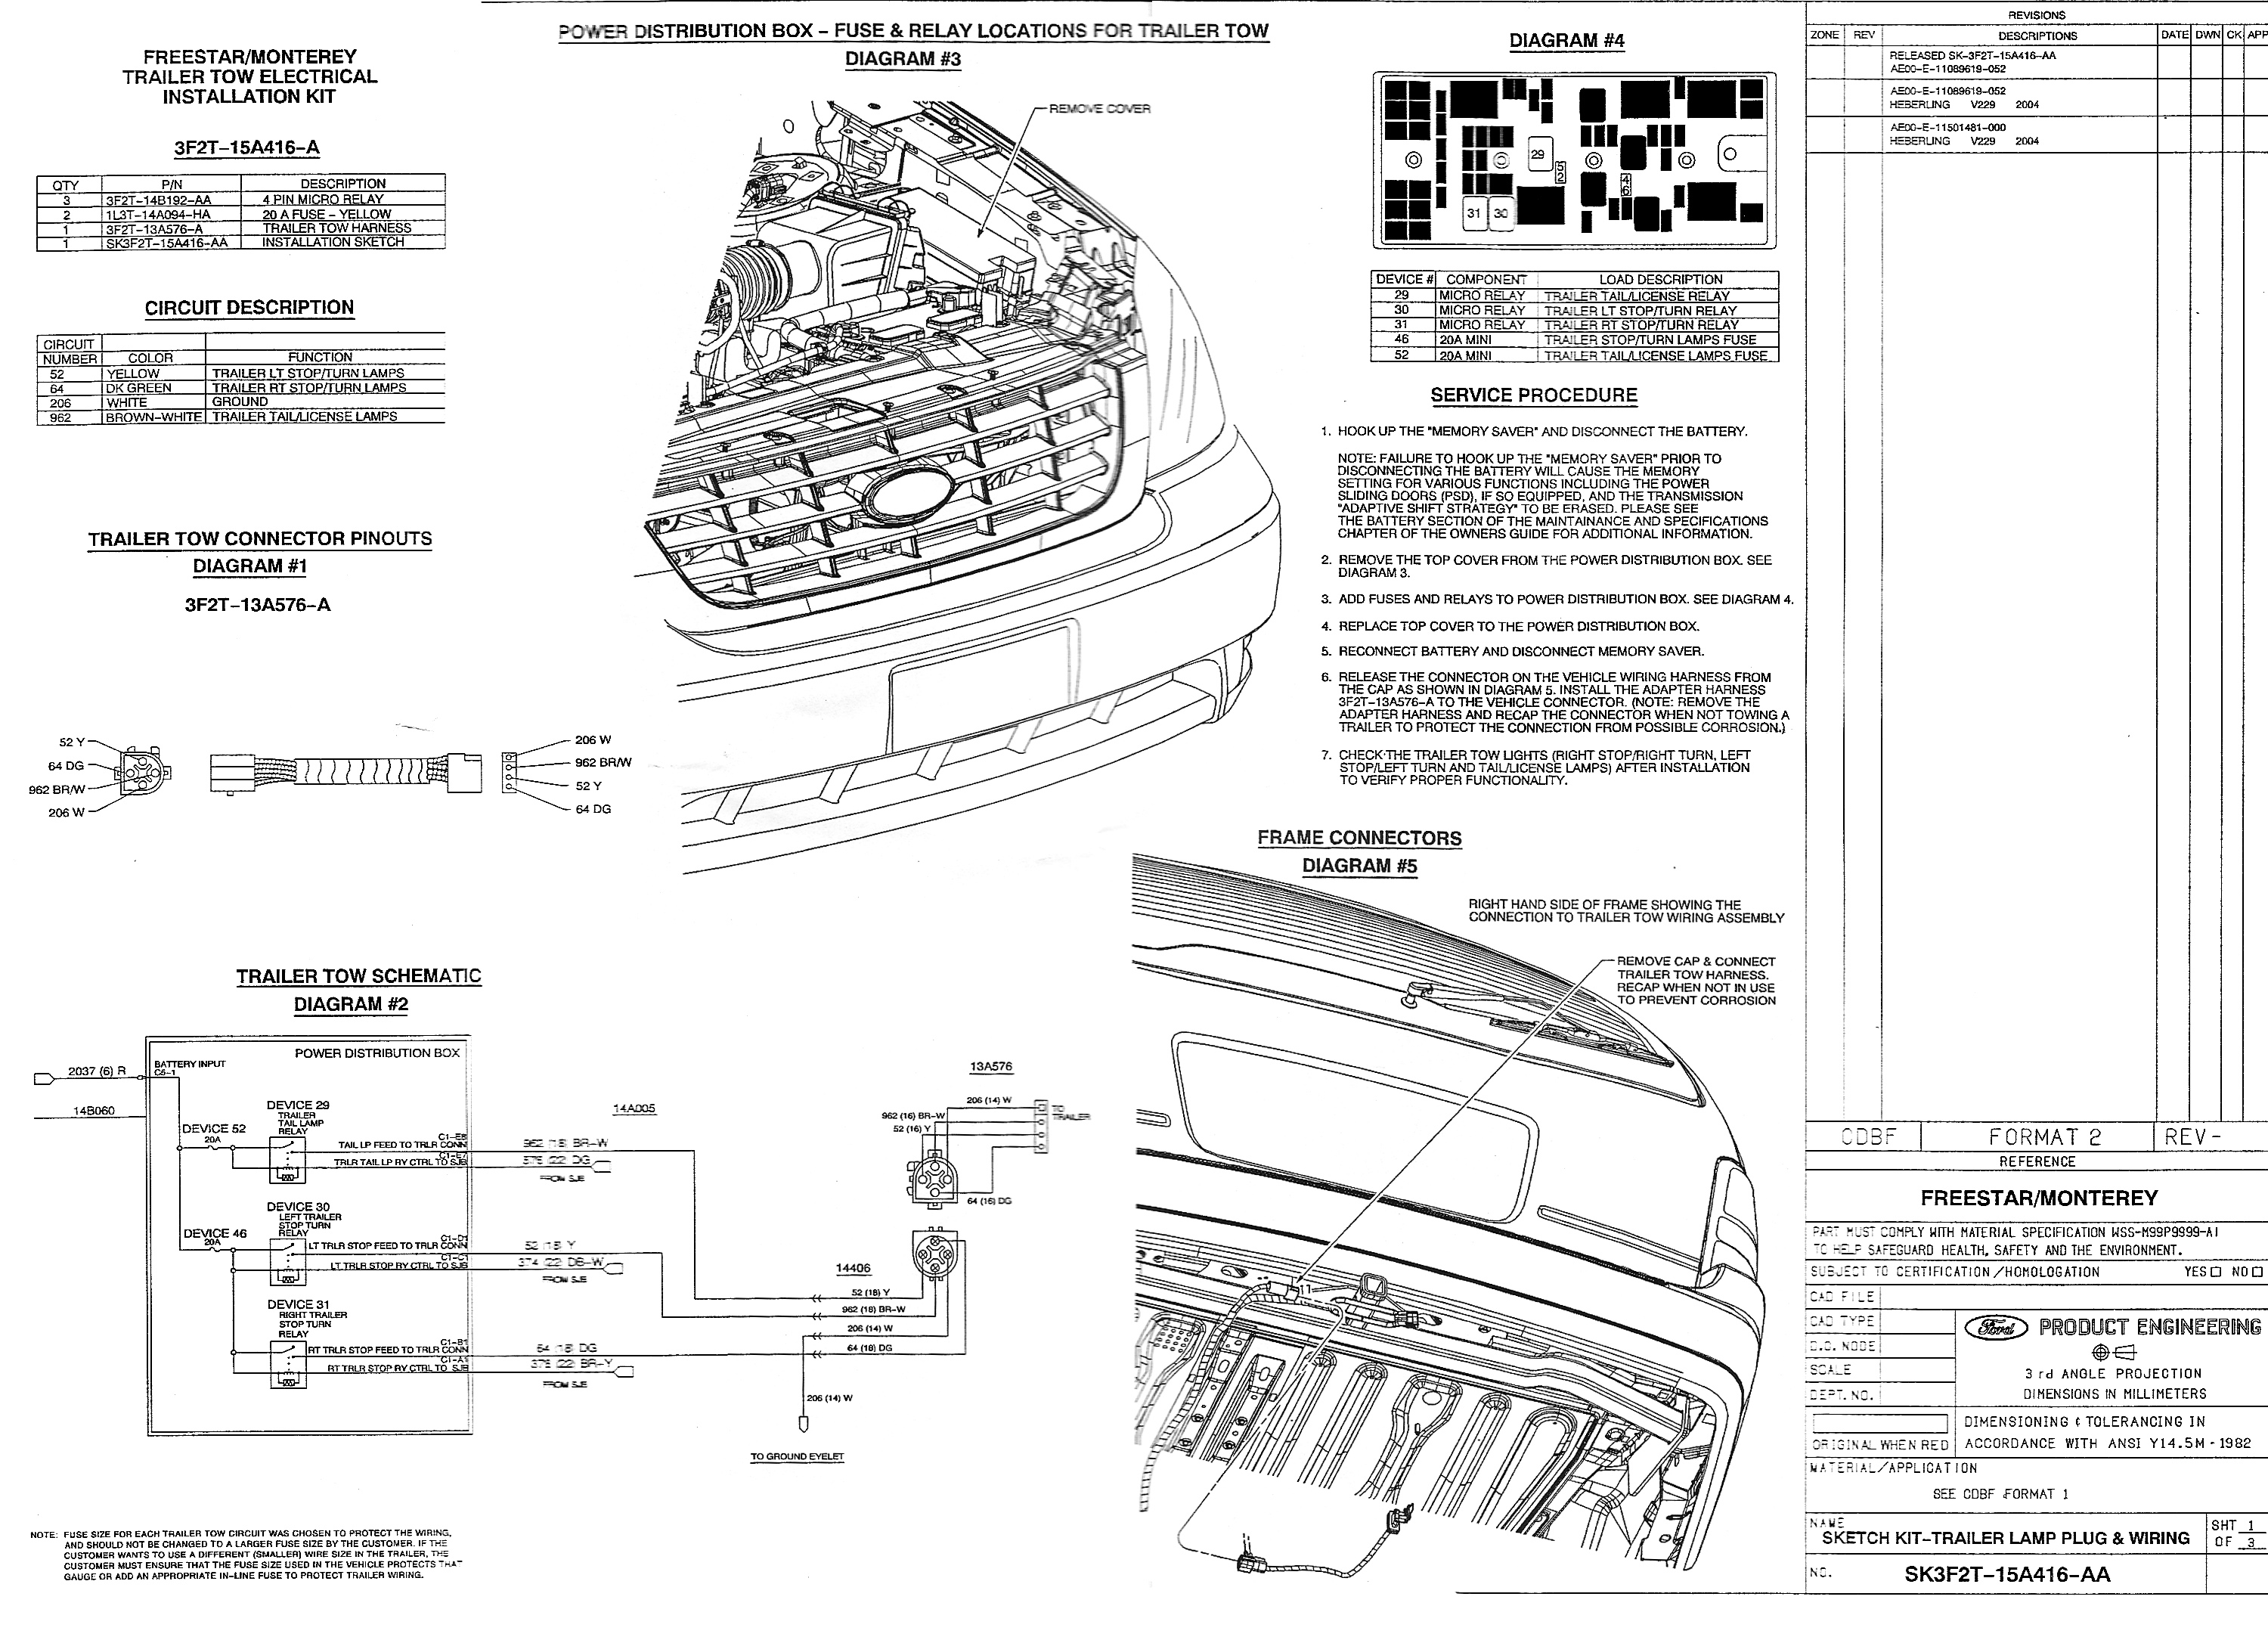 Trailer Wiring On The 2005 Ford Freestar Davintosh S Max Towbar Diagram Image Large File 16mb